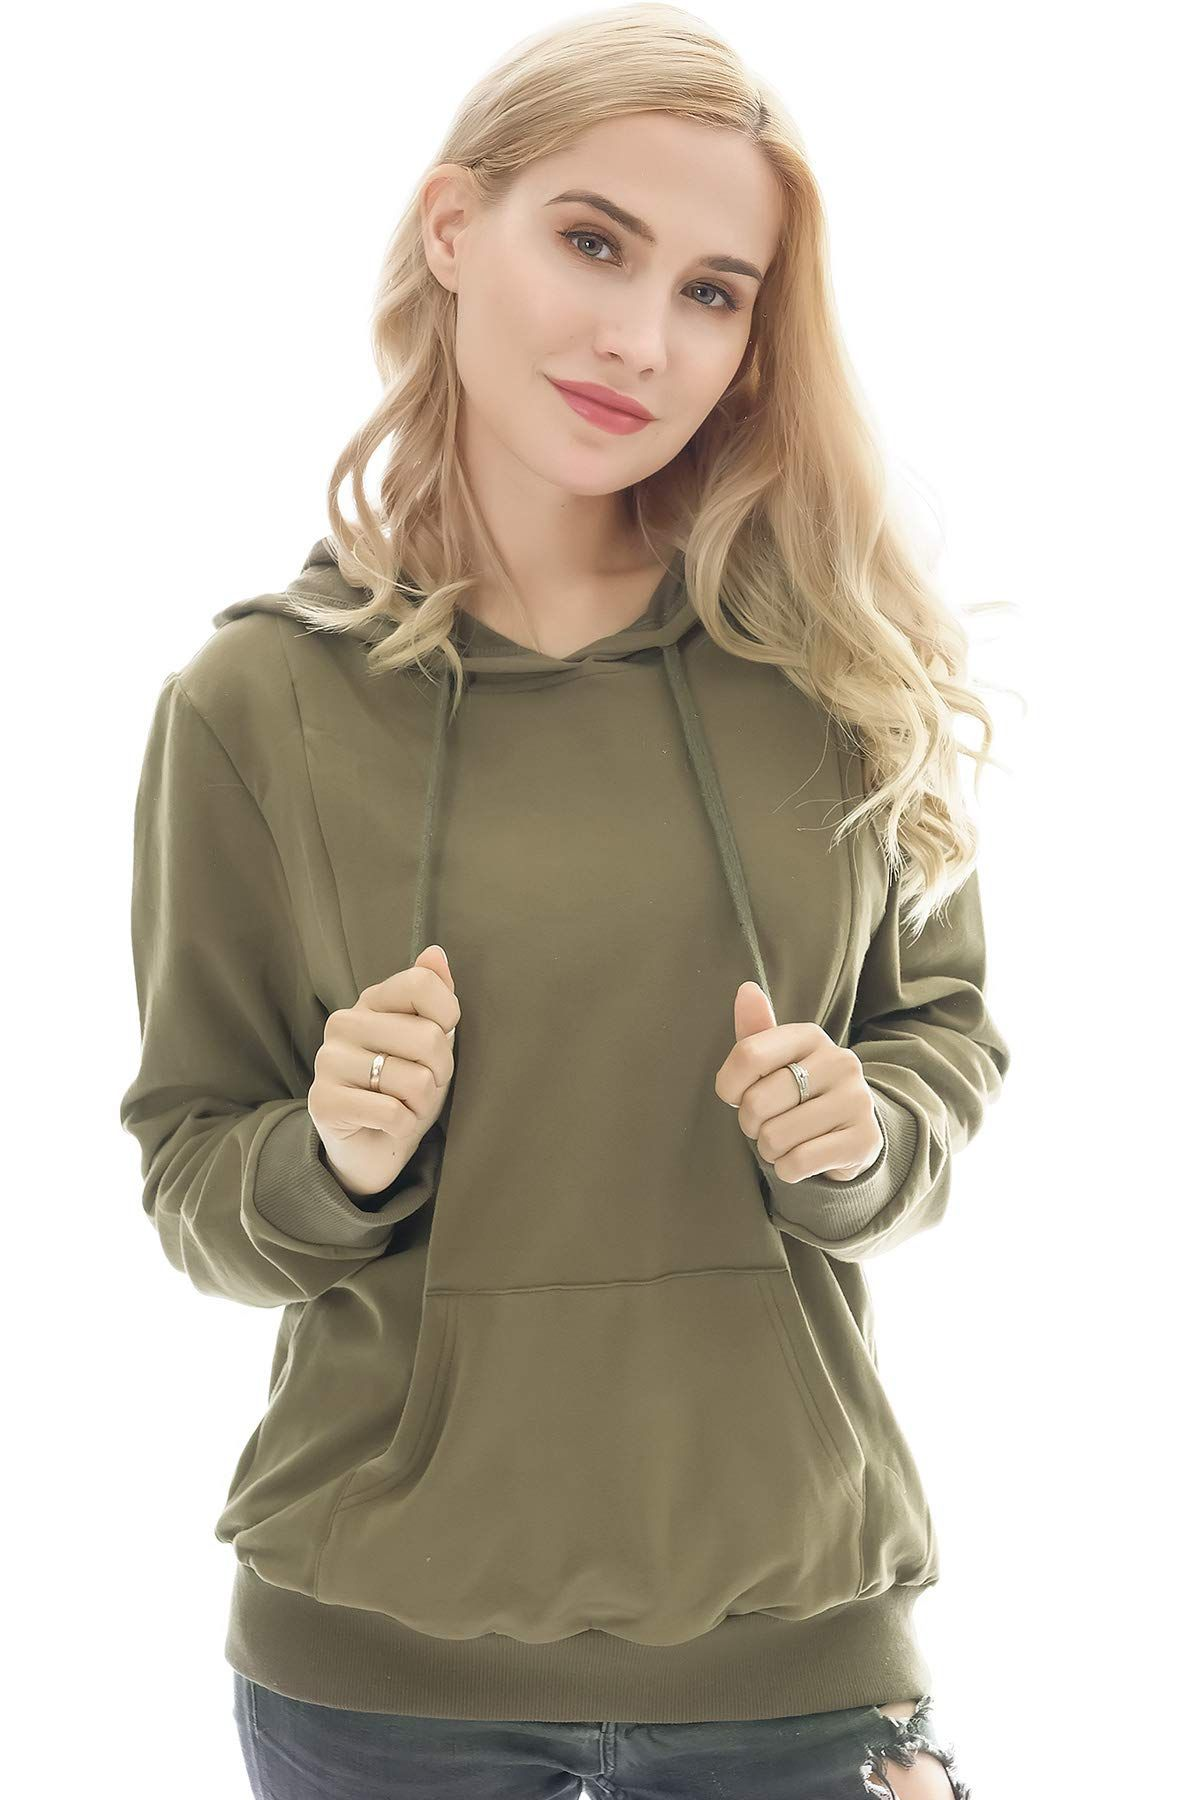 40ef3abe53bec Bearsland Womens Maternity Winter Sporty Hoodie Breastfeeding Sweater  Nursing TopArmyGreenL *** For more information, visit image link.